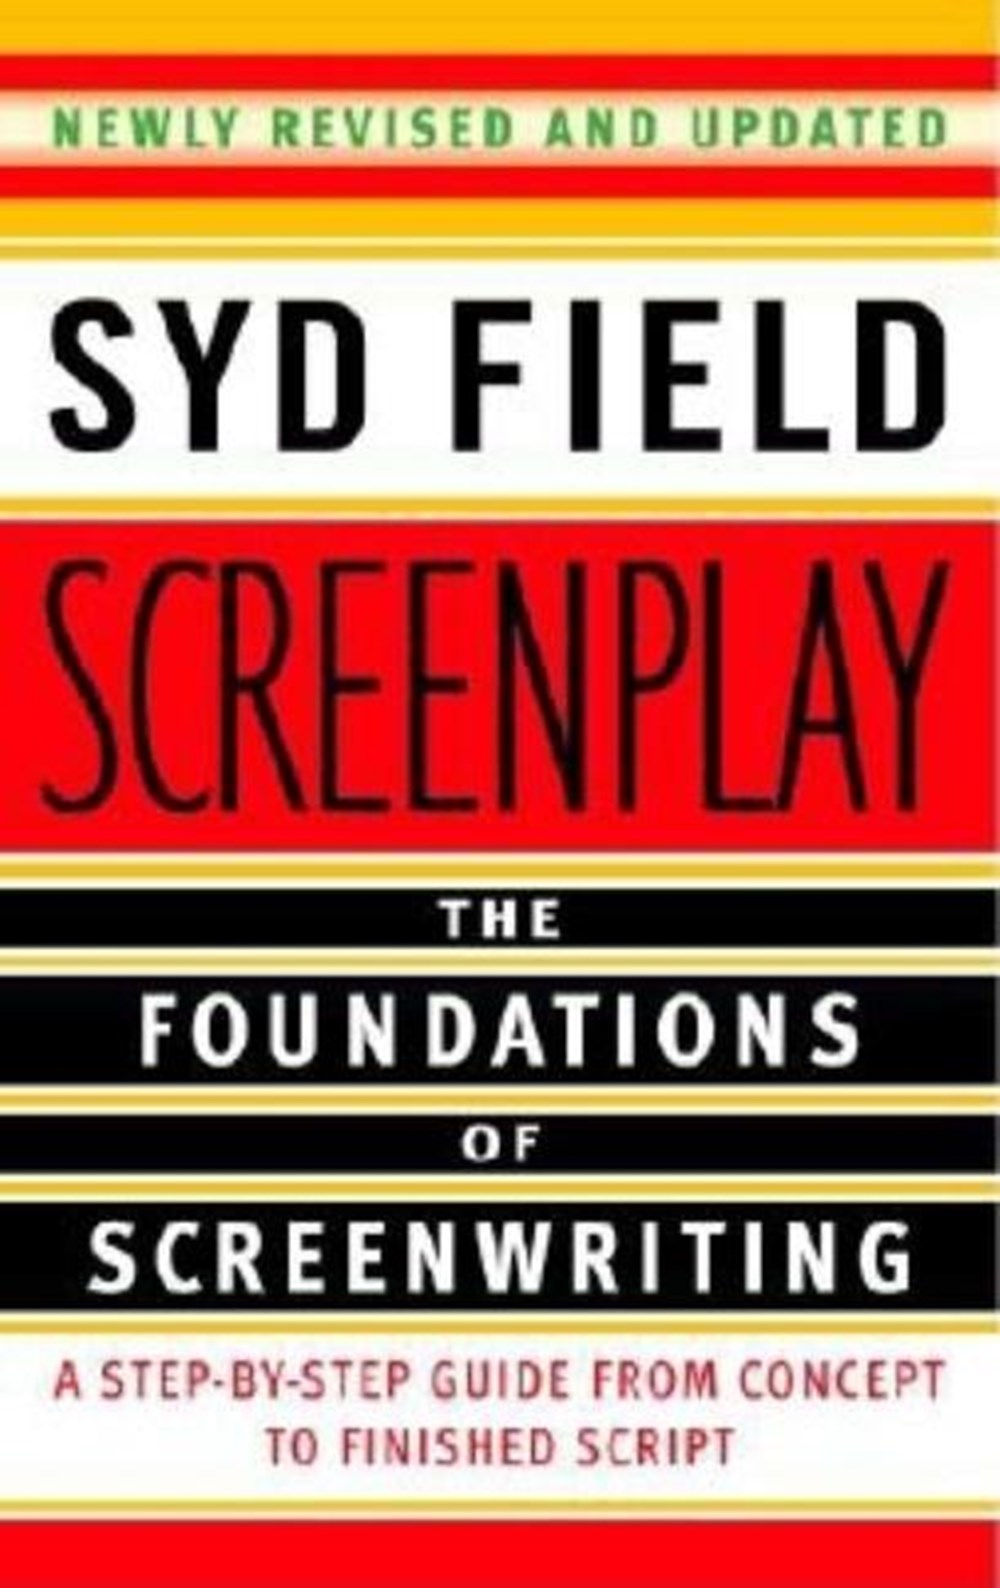 Screenplay The Foundations of Screenwriting (Revised)